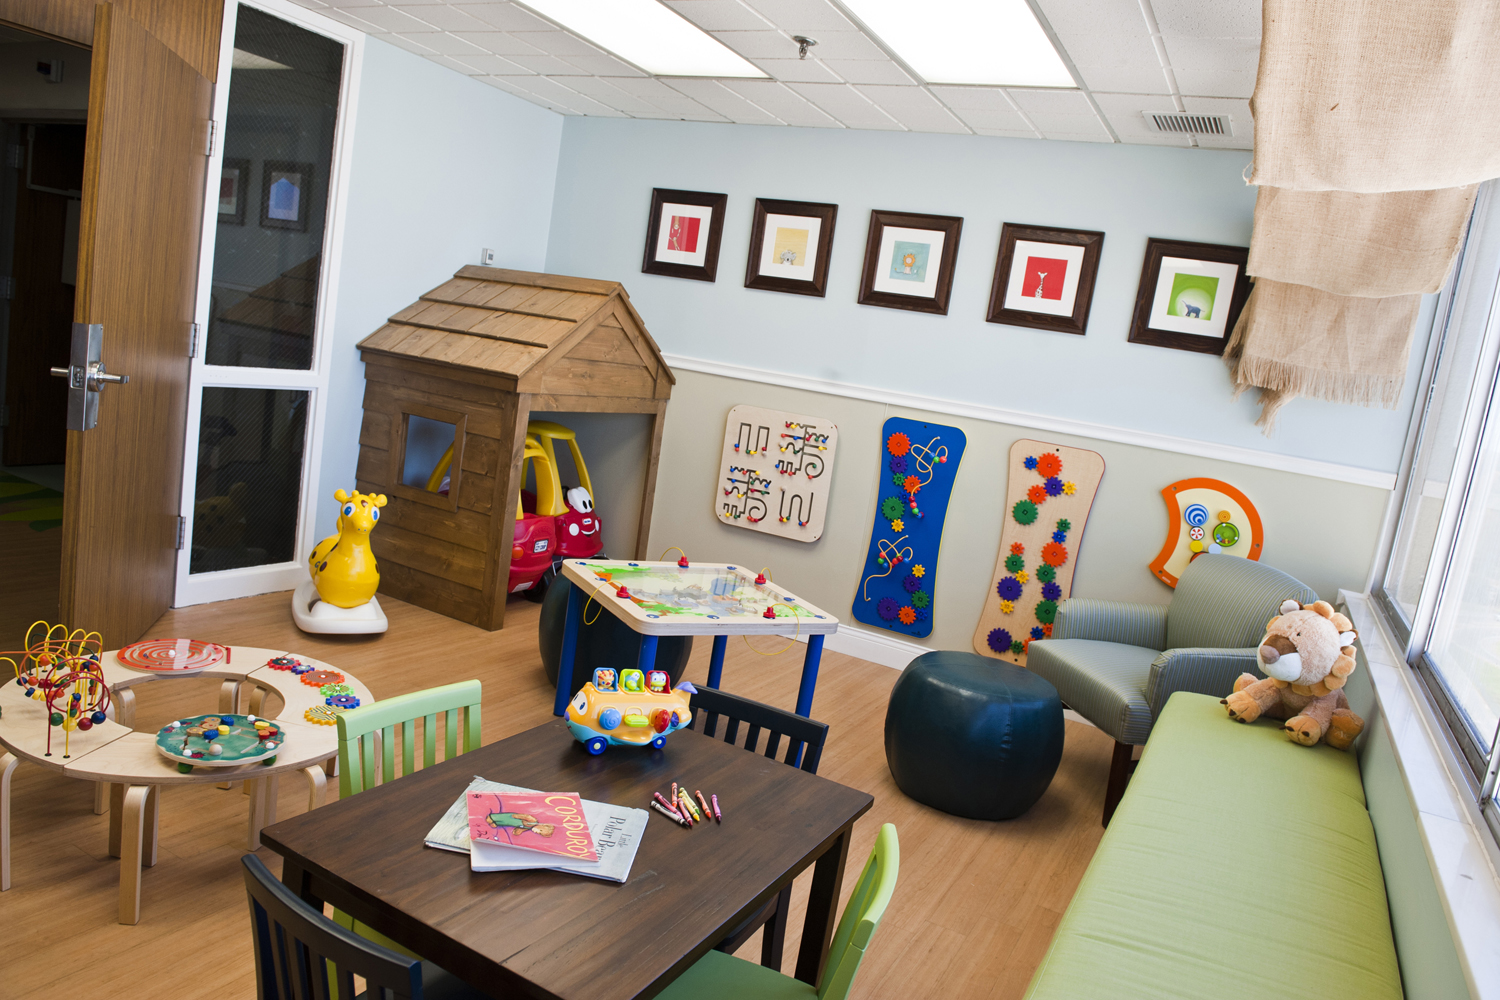 Waiting Room Solutions Designed for Kids | SensoryEdge Blog